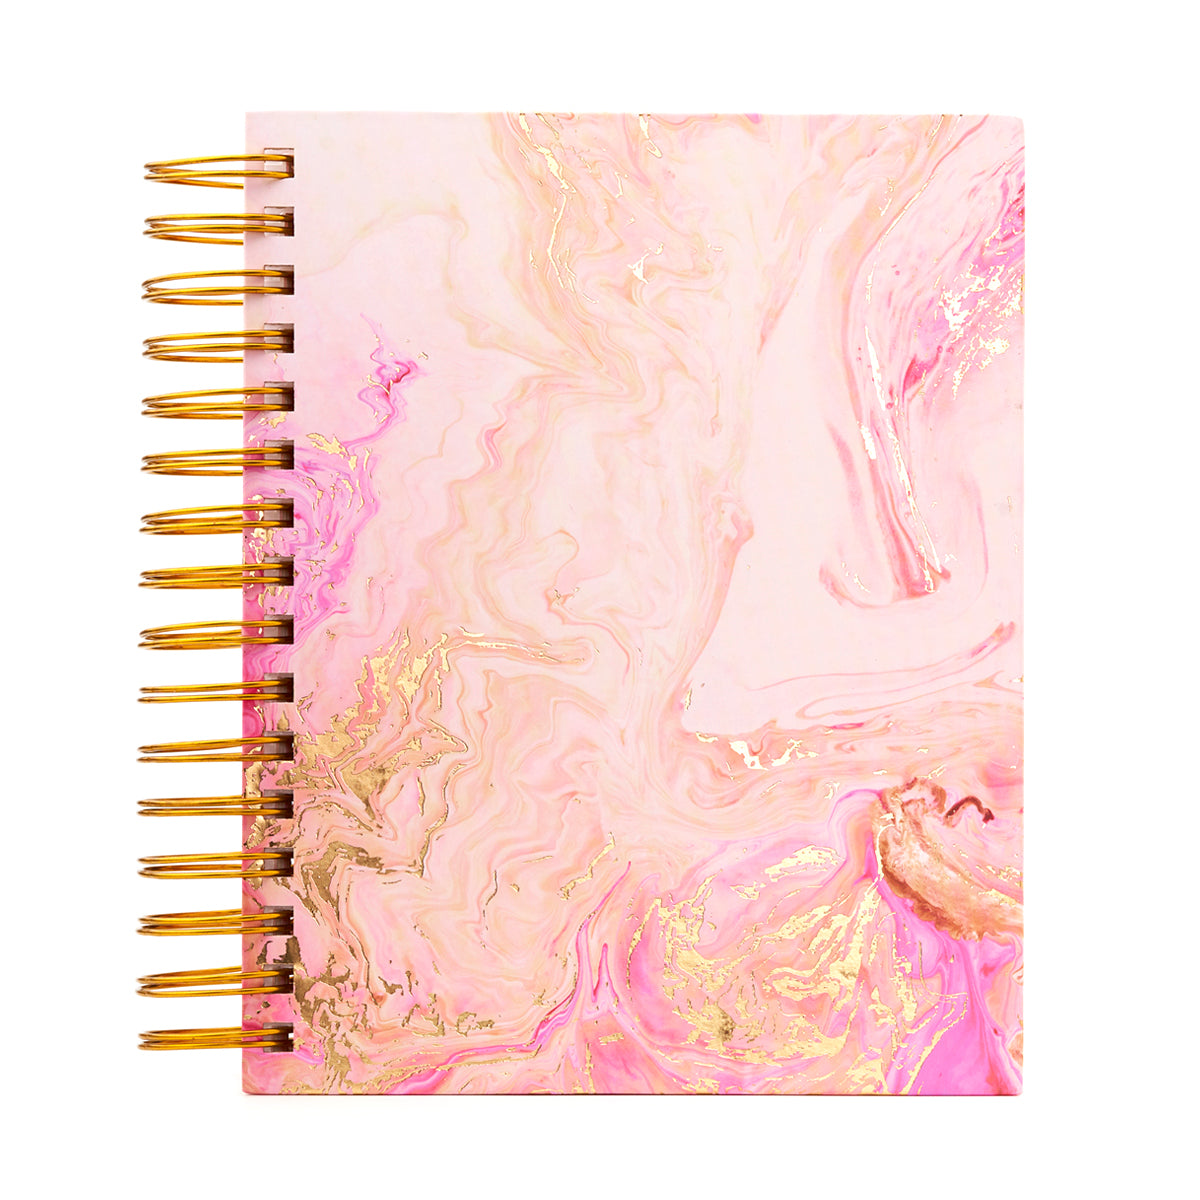 A5 Undated Diary Planner - Rose Quartz